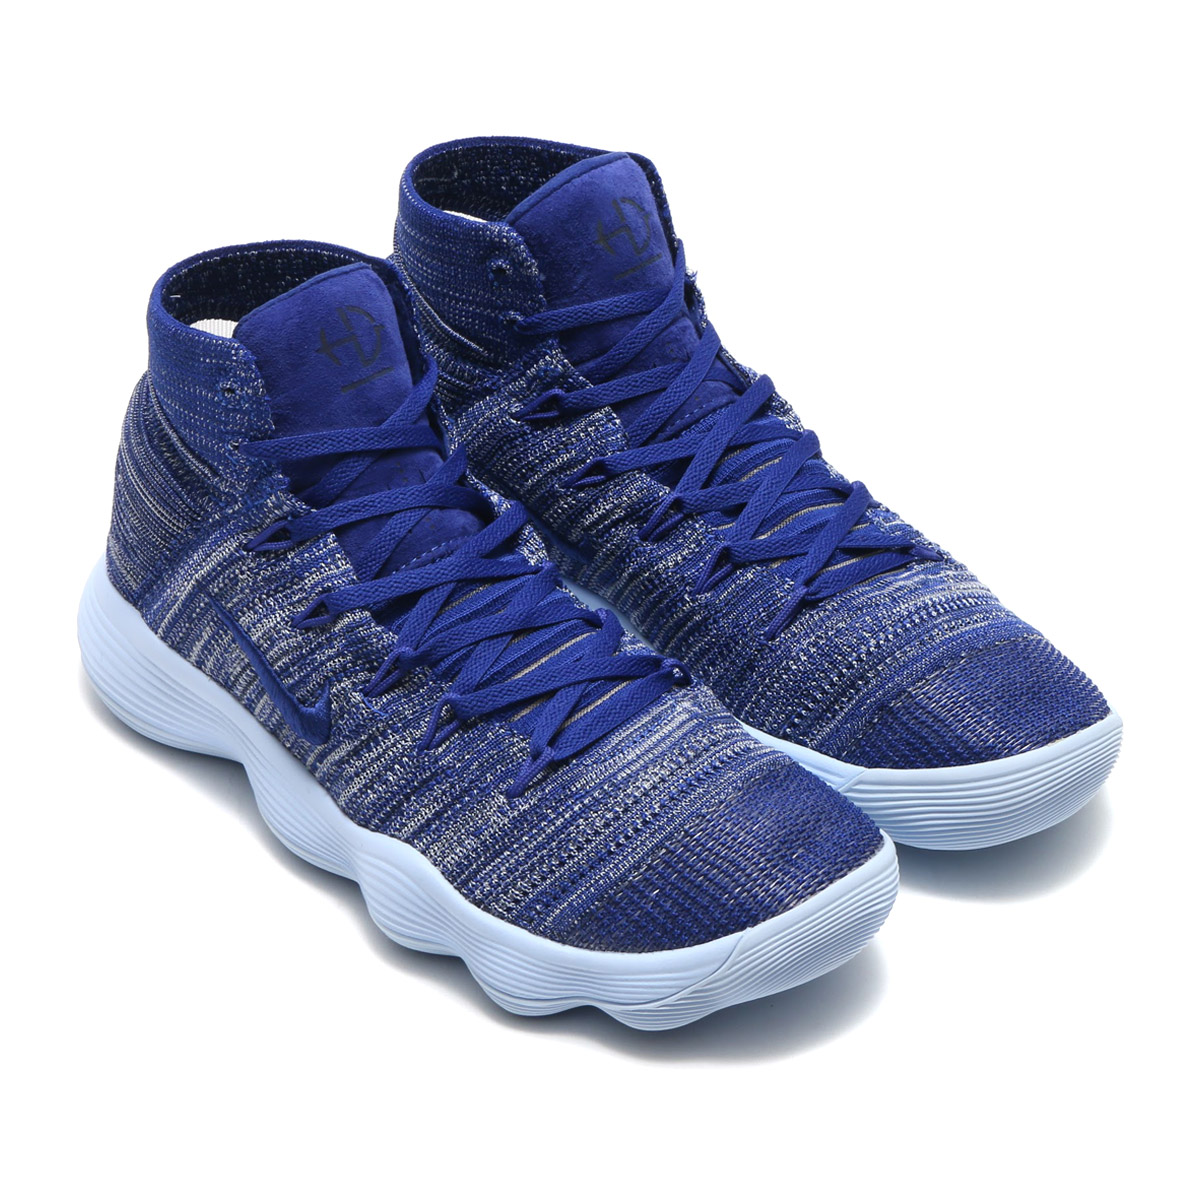 hot sale online e32f8 dcaf8 NIKE HYPERDUNK 2017 FLYKNIT EP (Nike luna hyper dunk fly knit EP) (COLLEGE  NAVY DEEP ROYAL BLUE) 17FA-S